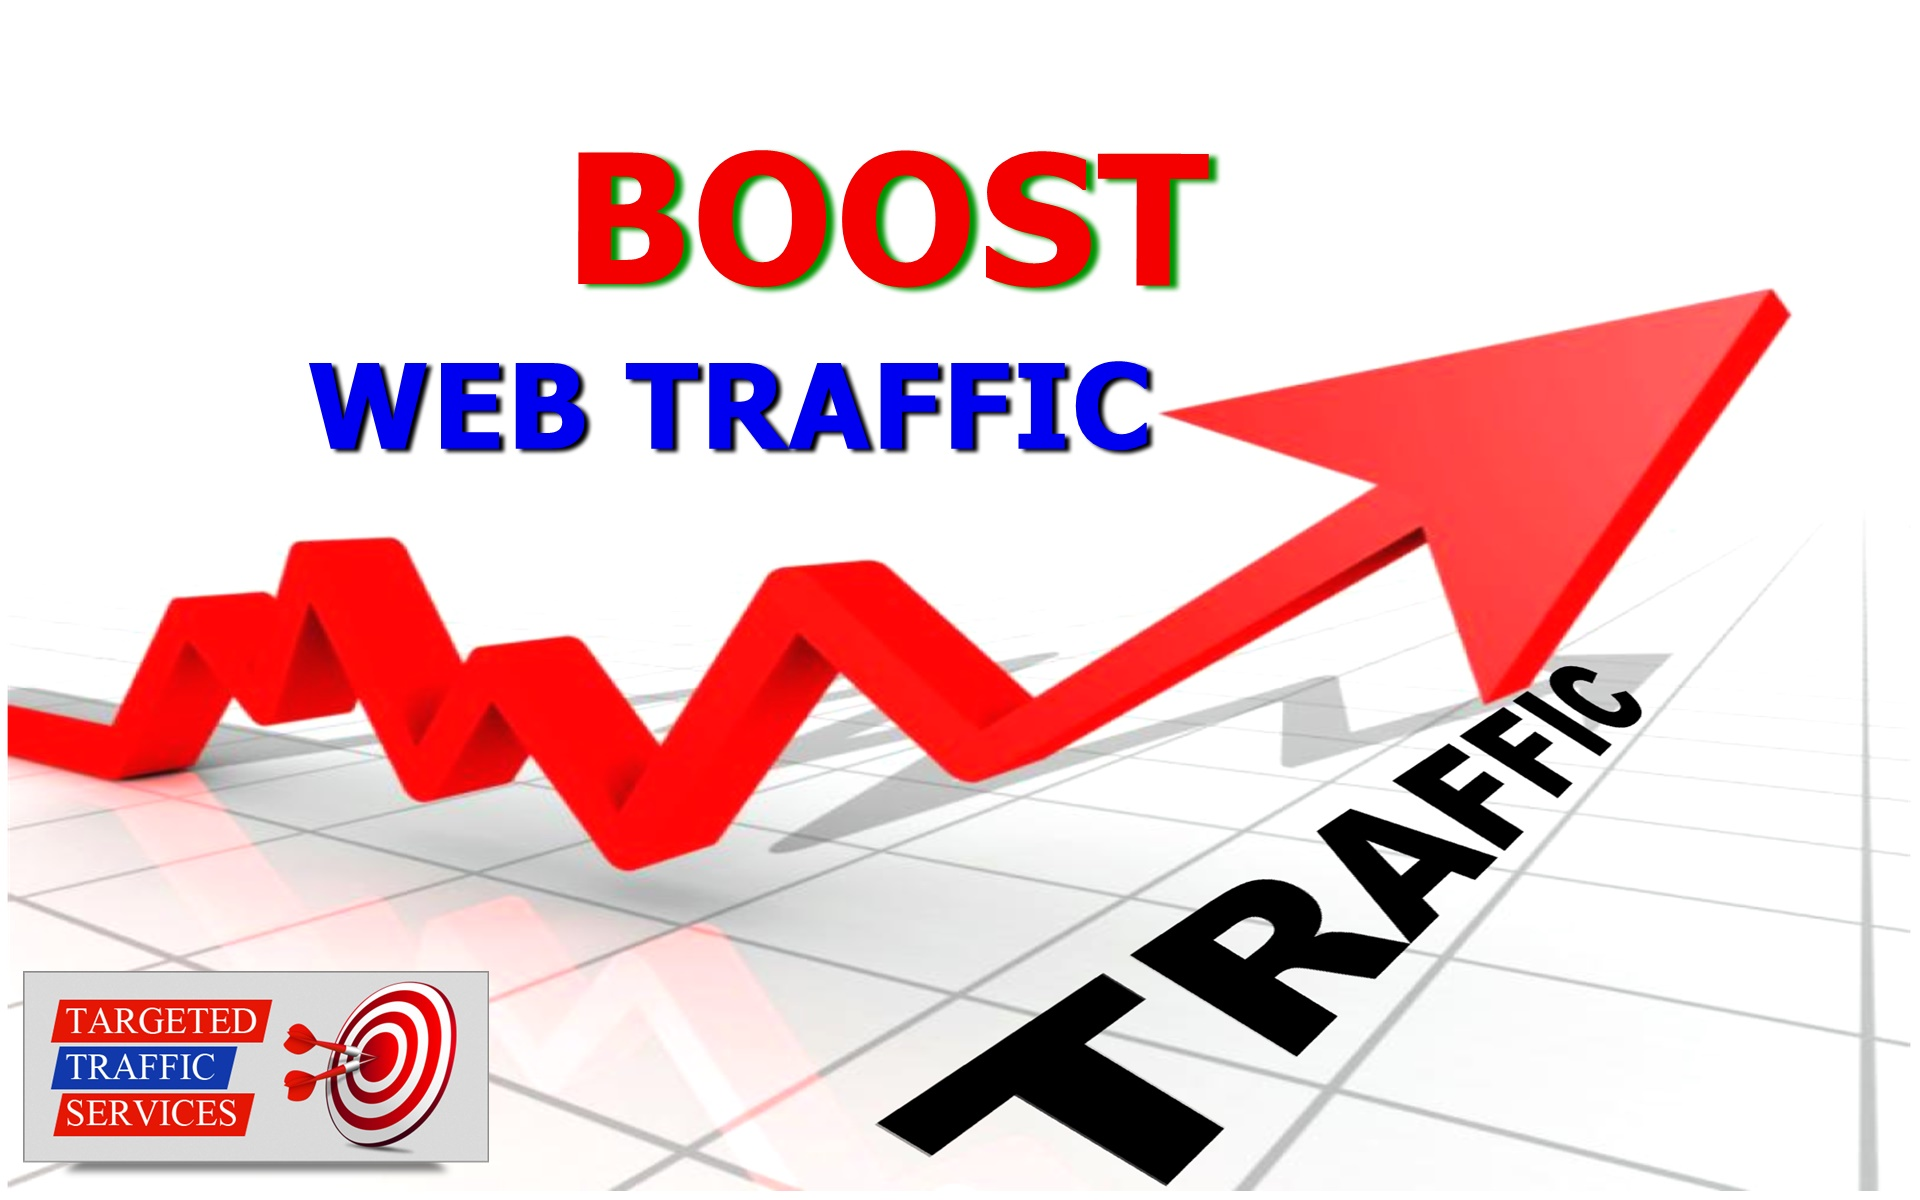 I will increase your website revenue through web traffic